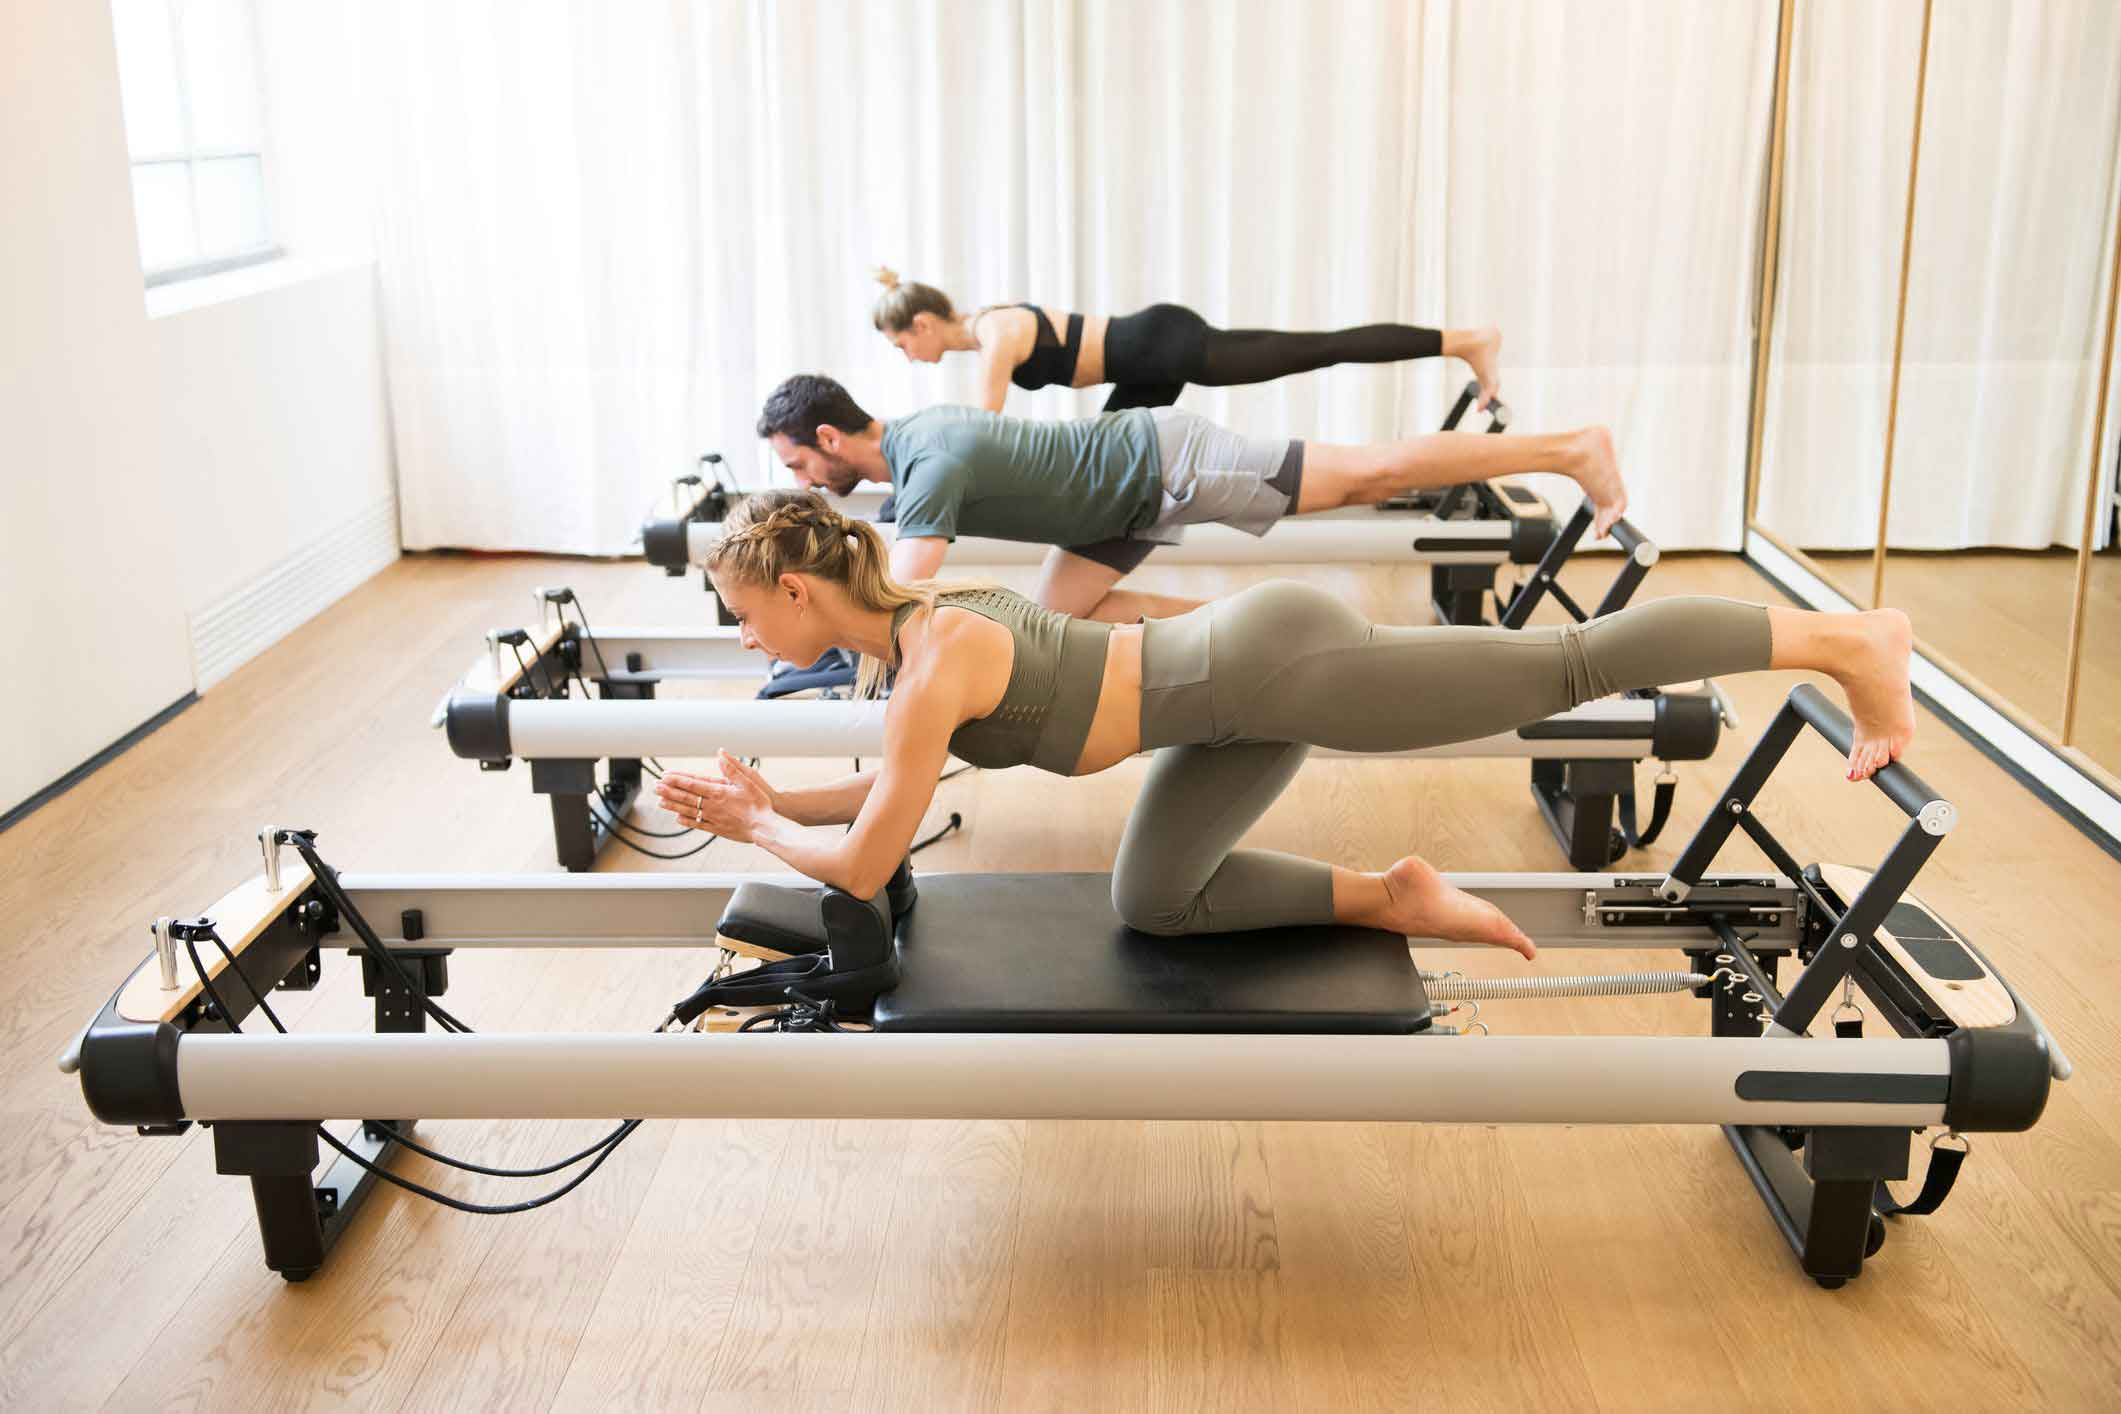 Pilates reformer pictures 2